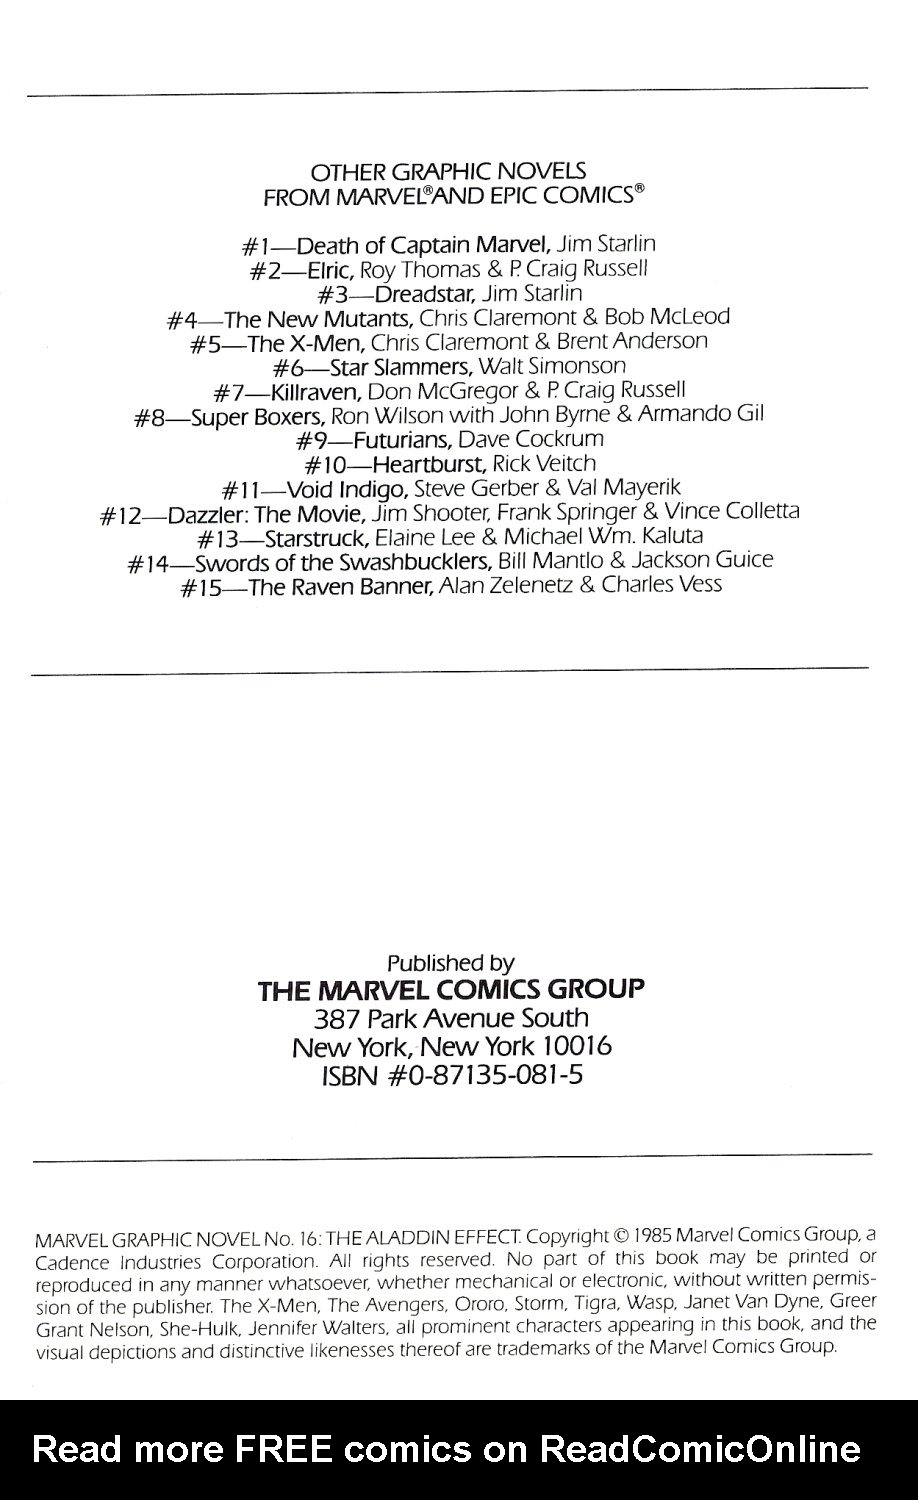 Marvel Graphic Novel 16_-_The_Aladdin_Effect Page 3